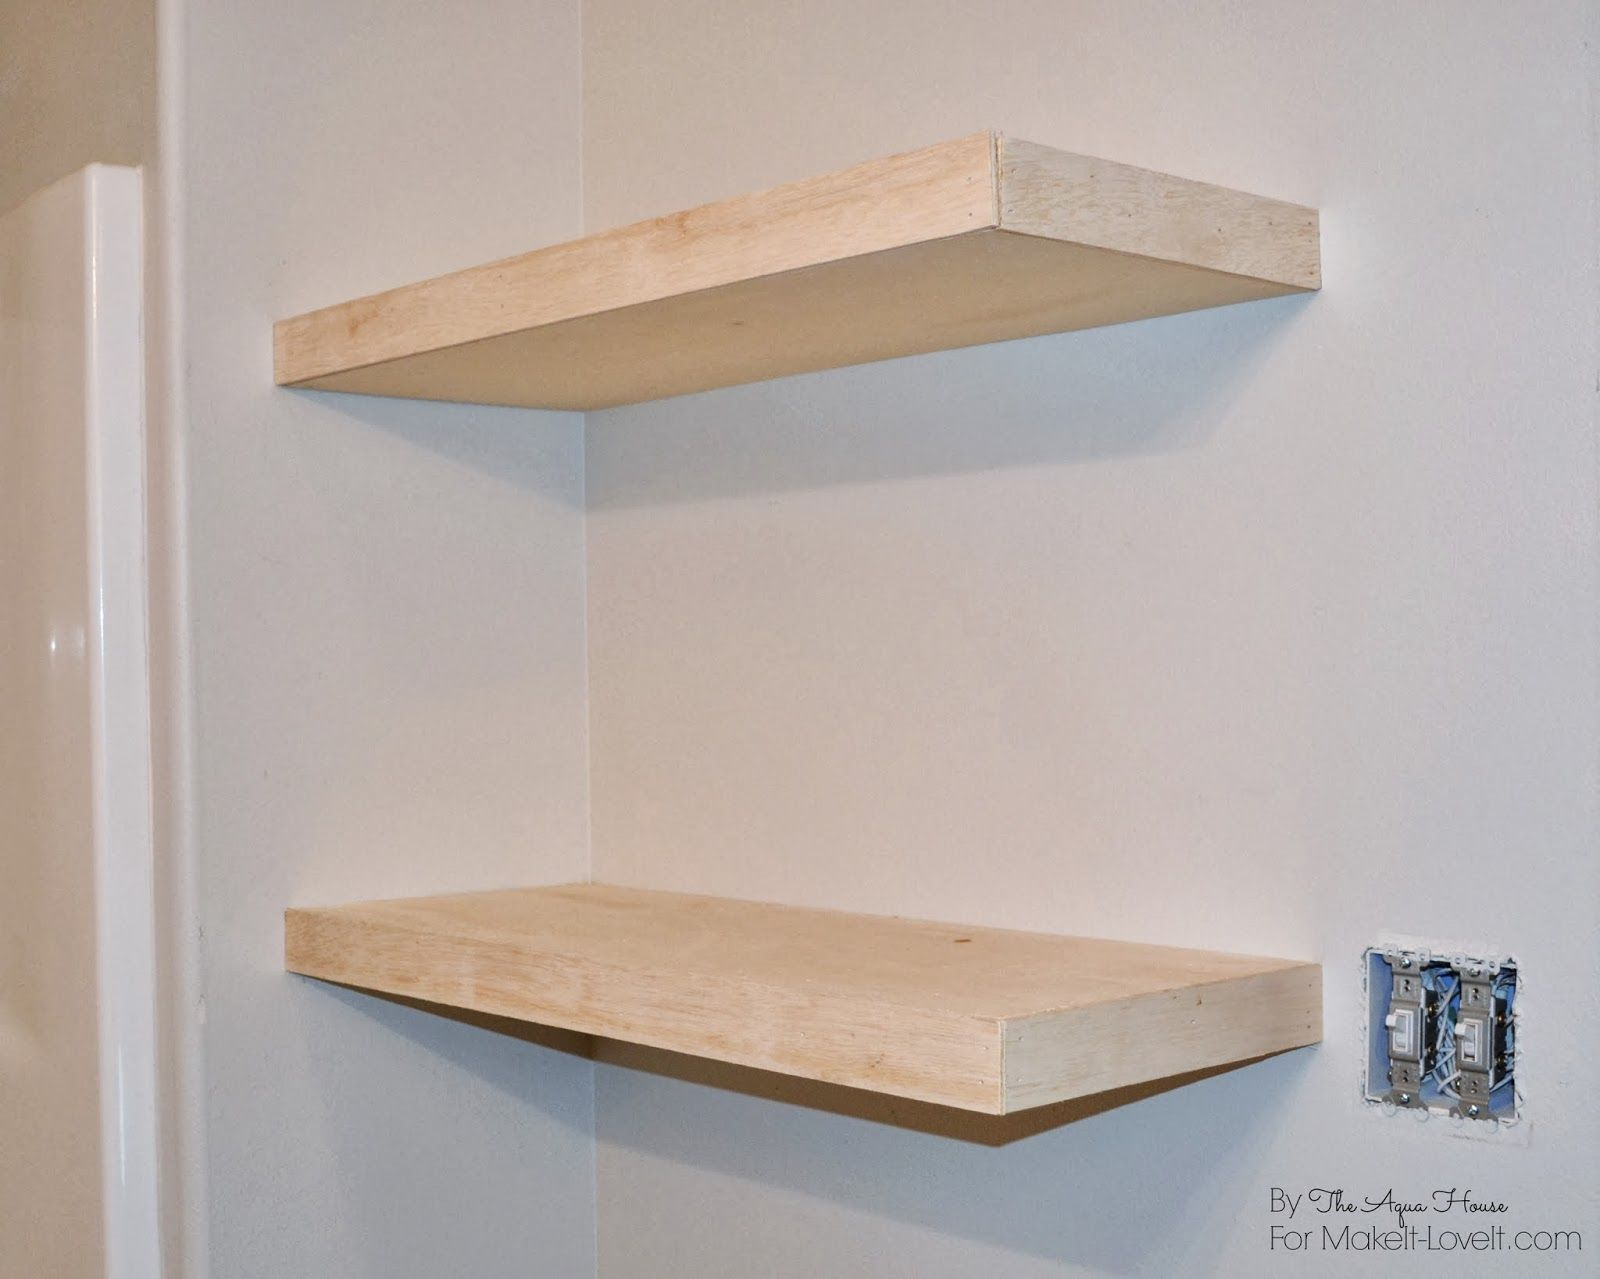 diy floating shelves great storage solution office closet without brackets makeit loveit sneaker wall mount mounting something heavy the hooks for clothes silver metal coat rack